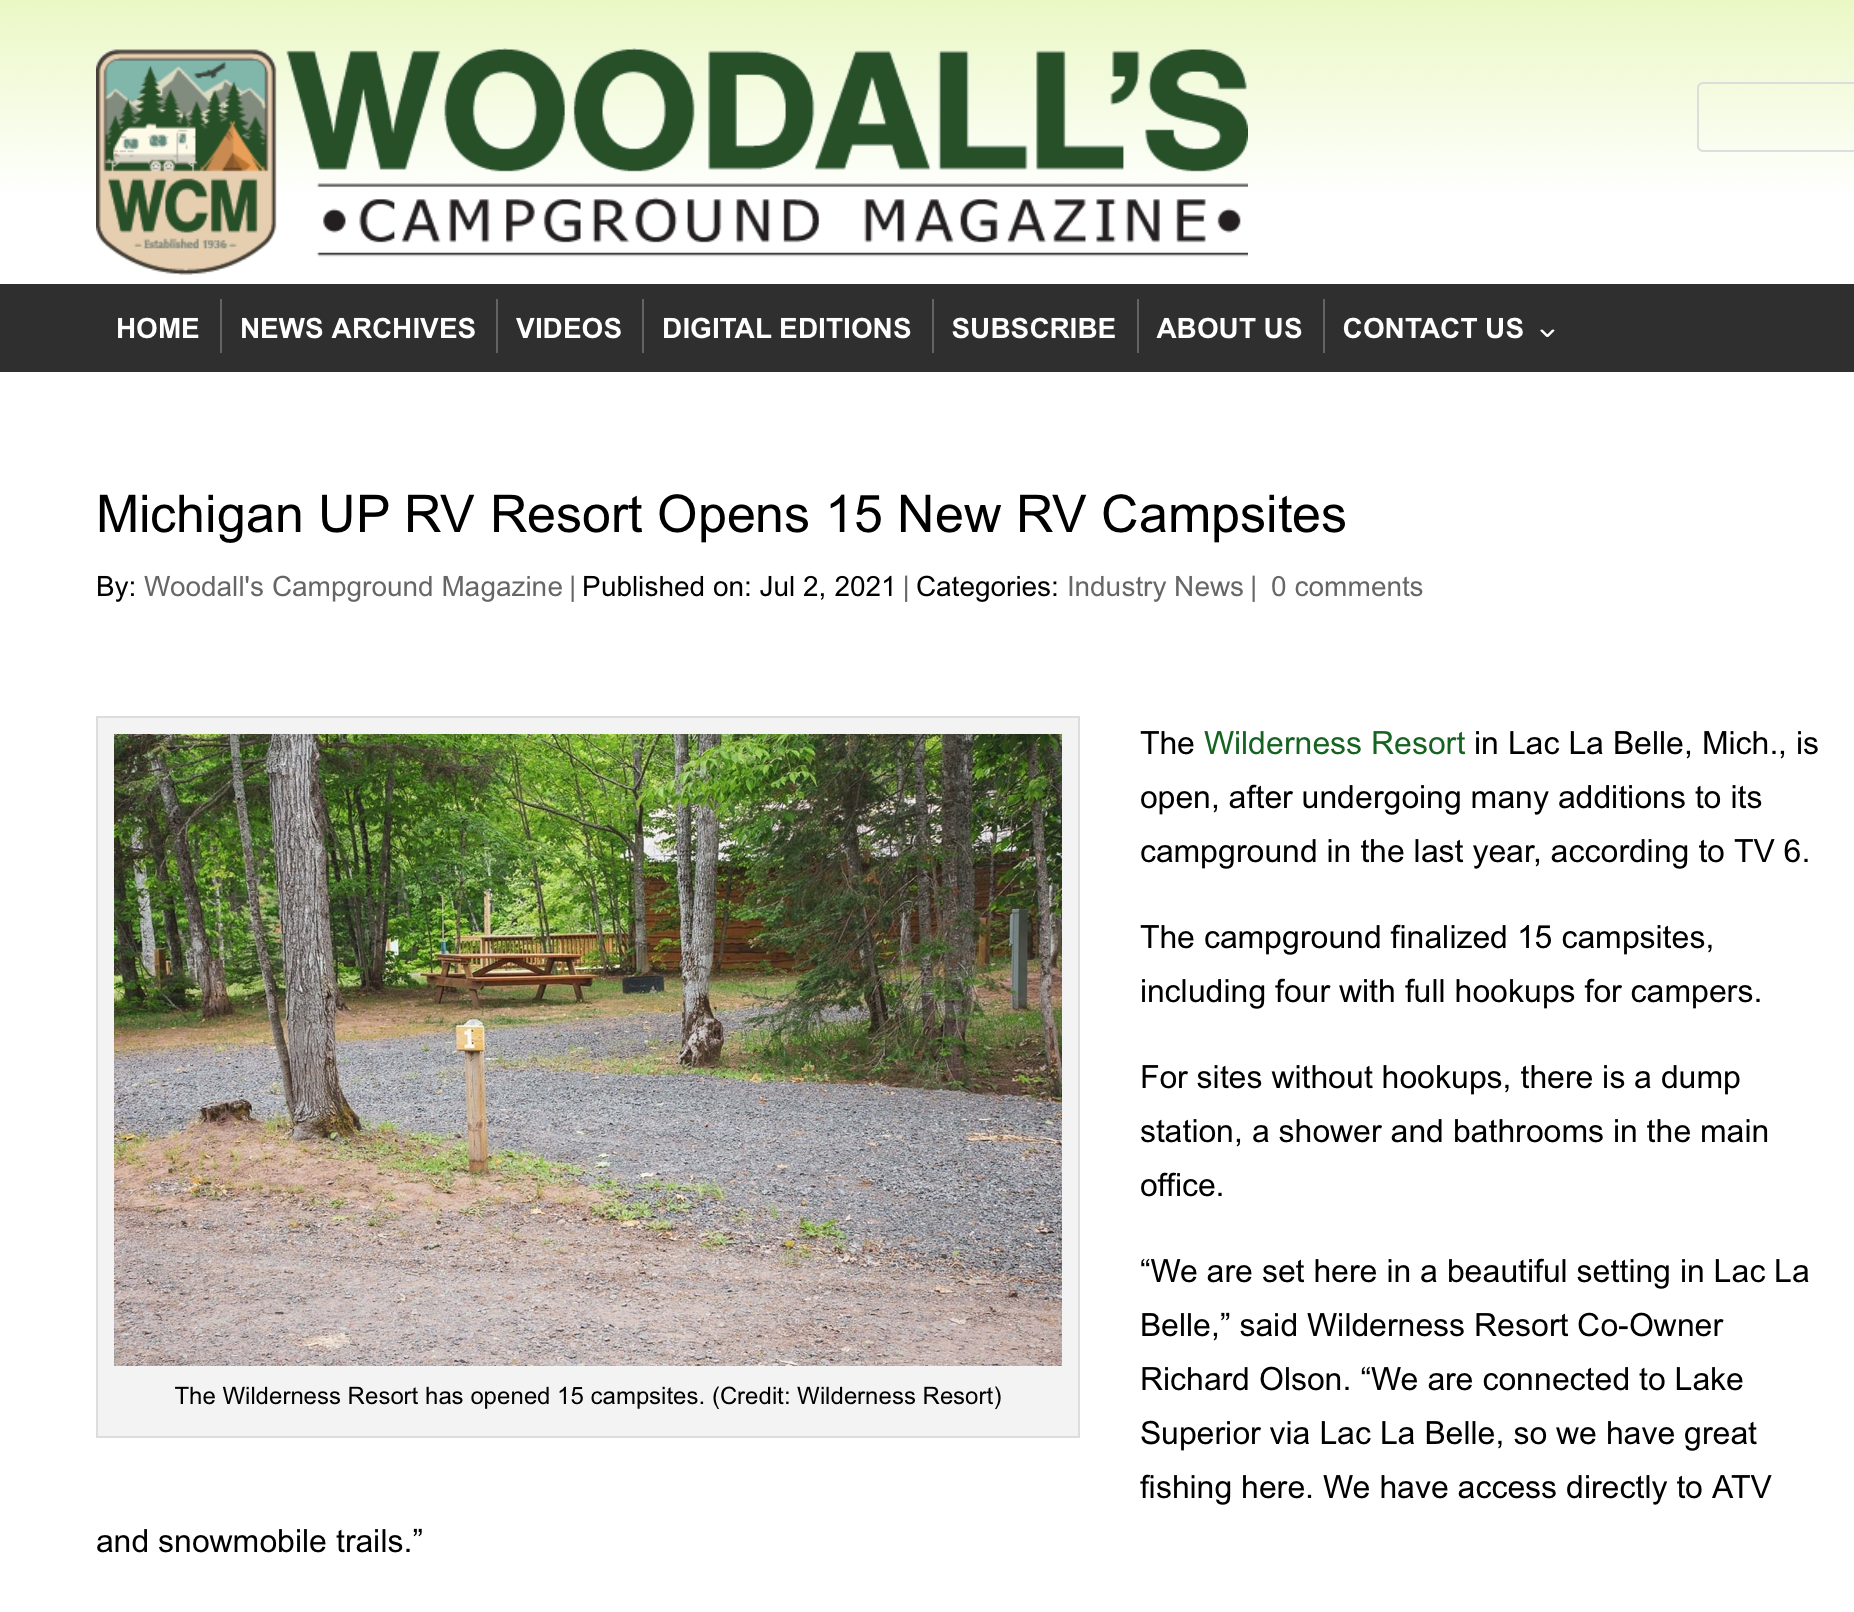 Woodall's Campground Magazine features the Wilderness Resort LLC